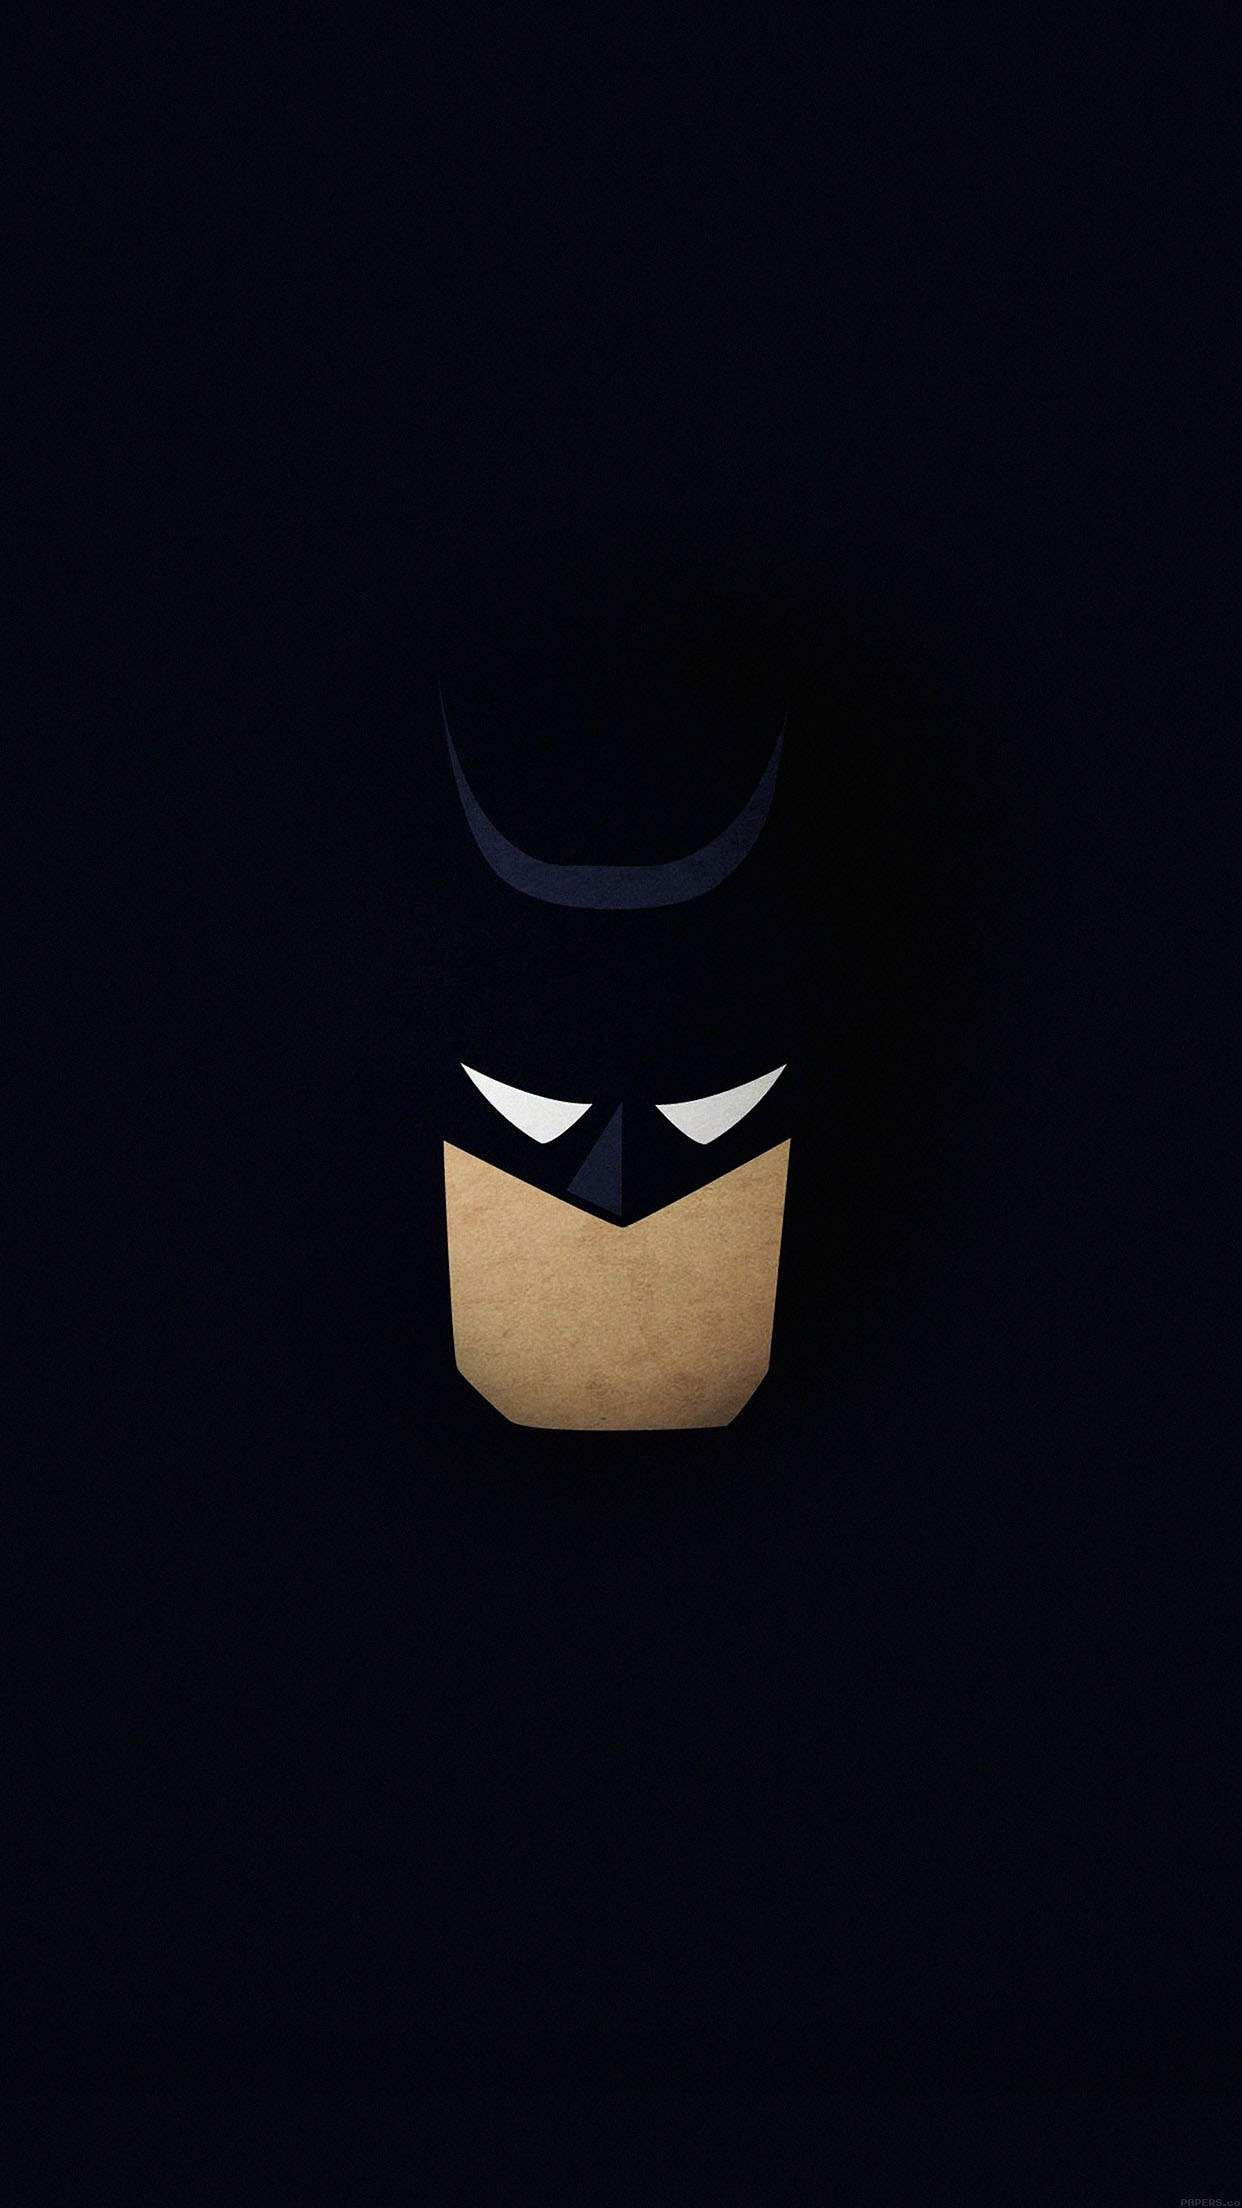 Download Mega Collection Of Cool Iphone Wallpapers Batman Wallpaper Batman Wallpaper Iphone Batman Pictures